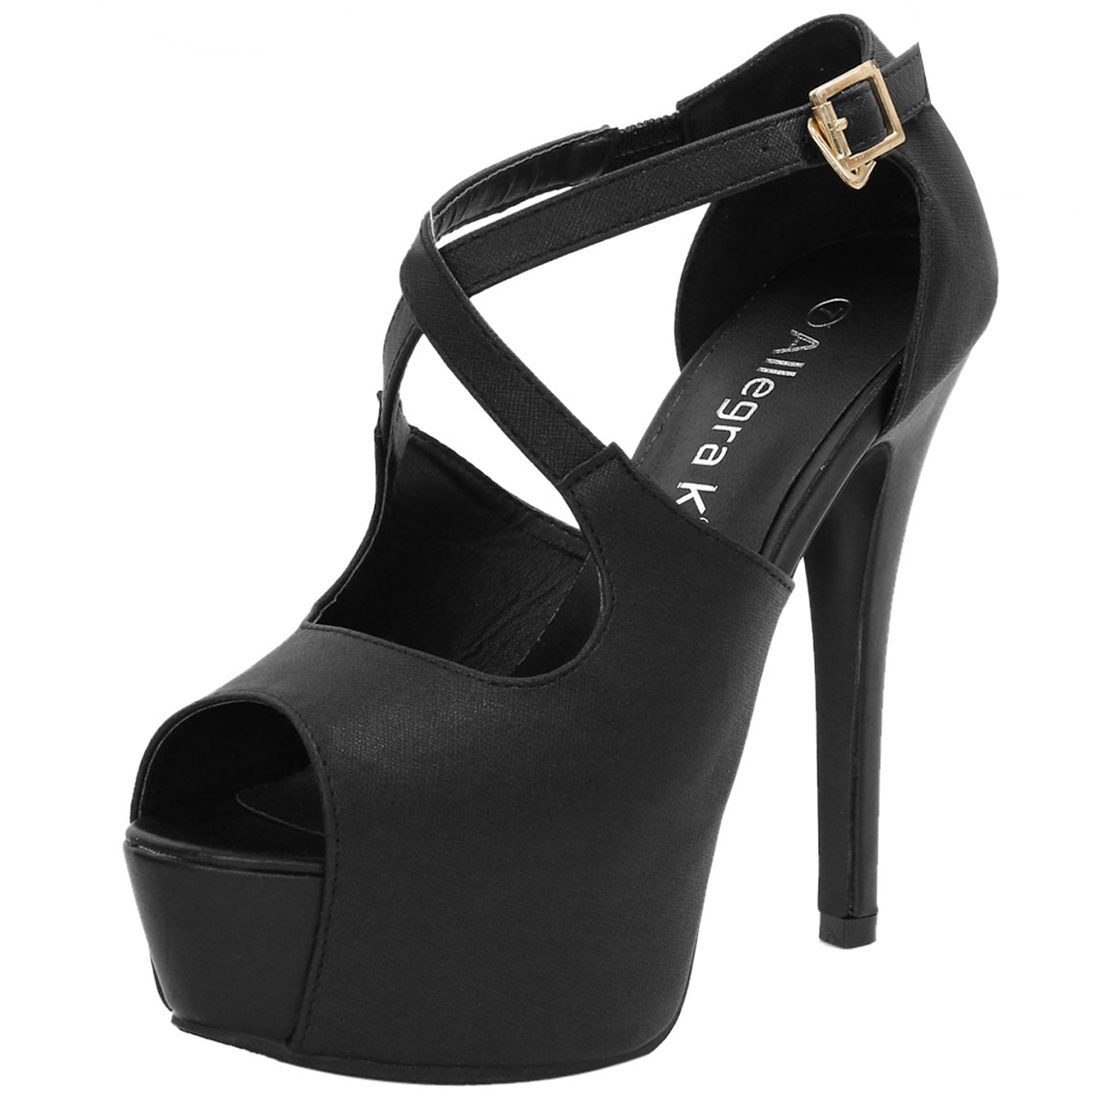 Woman Peep Toe High Heel Crisscross Straps Platform Sandals Black US 8.5